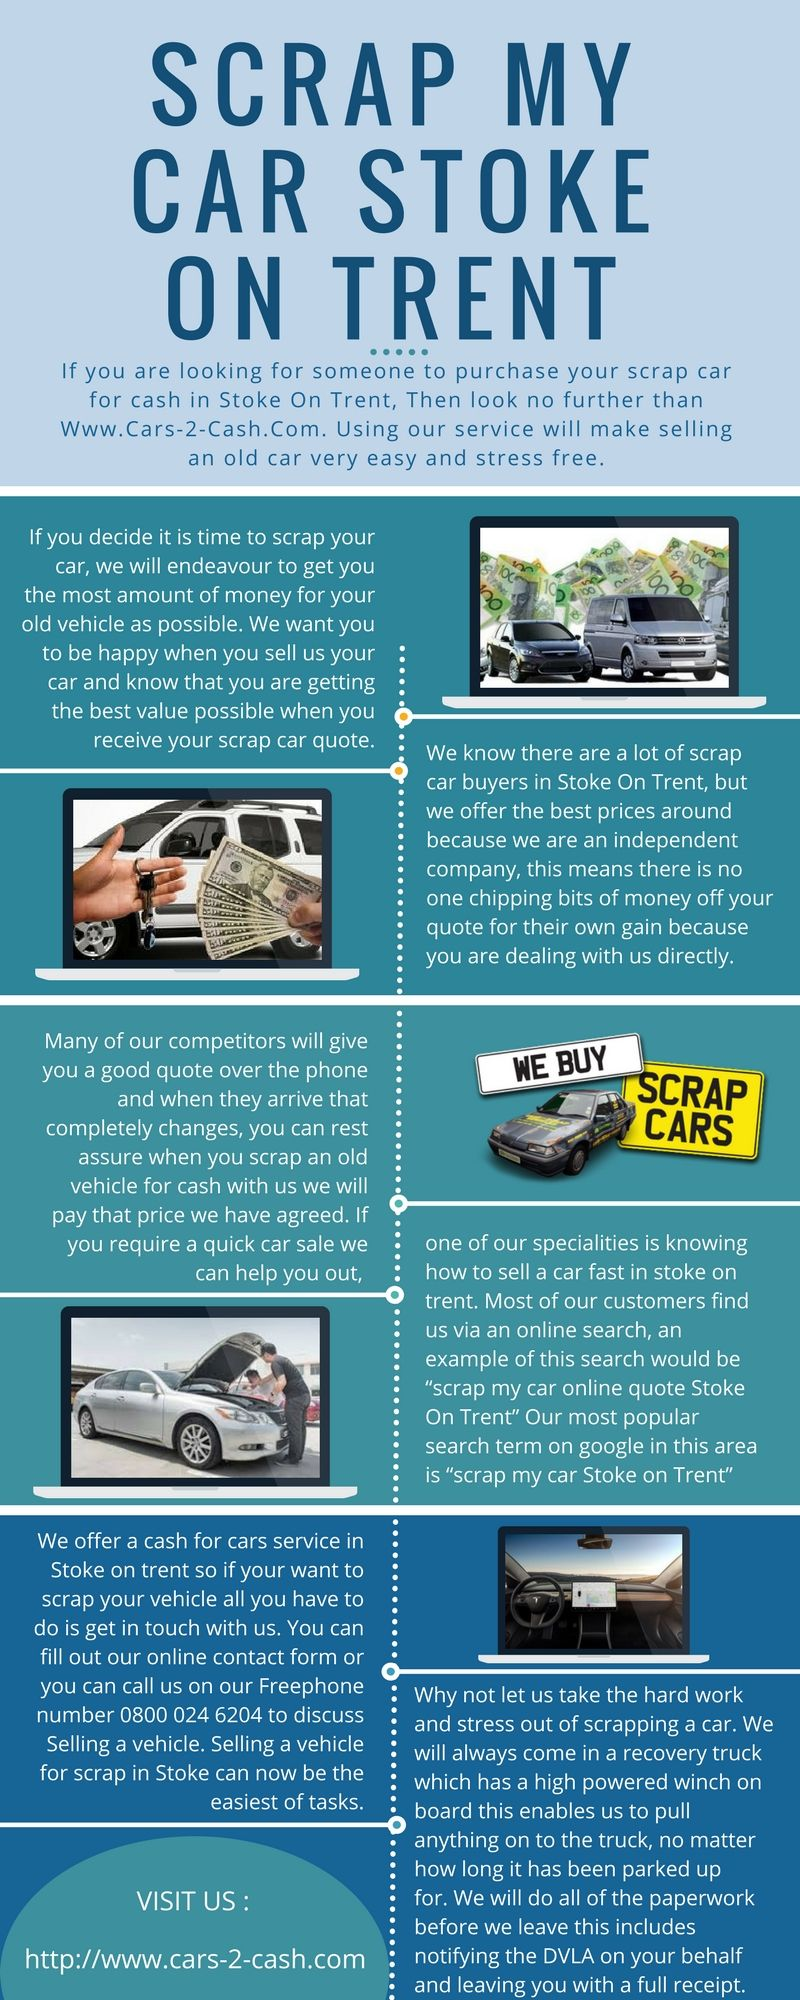 If you are looking for someone to purchase your scrap car for cash ...